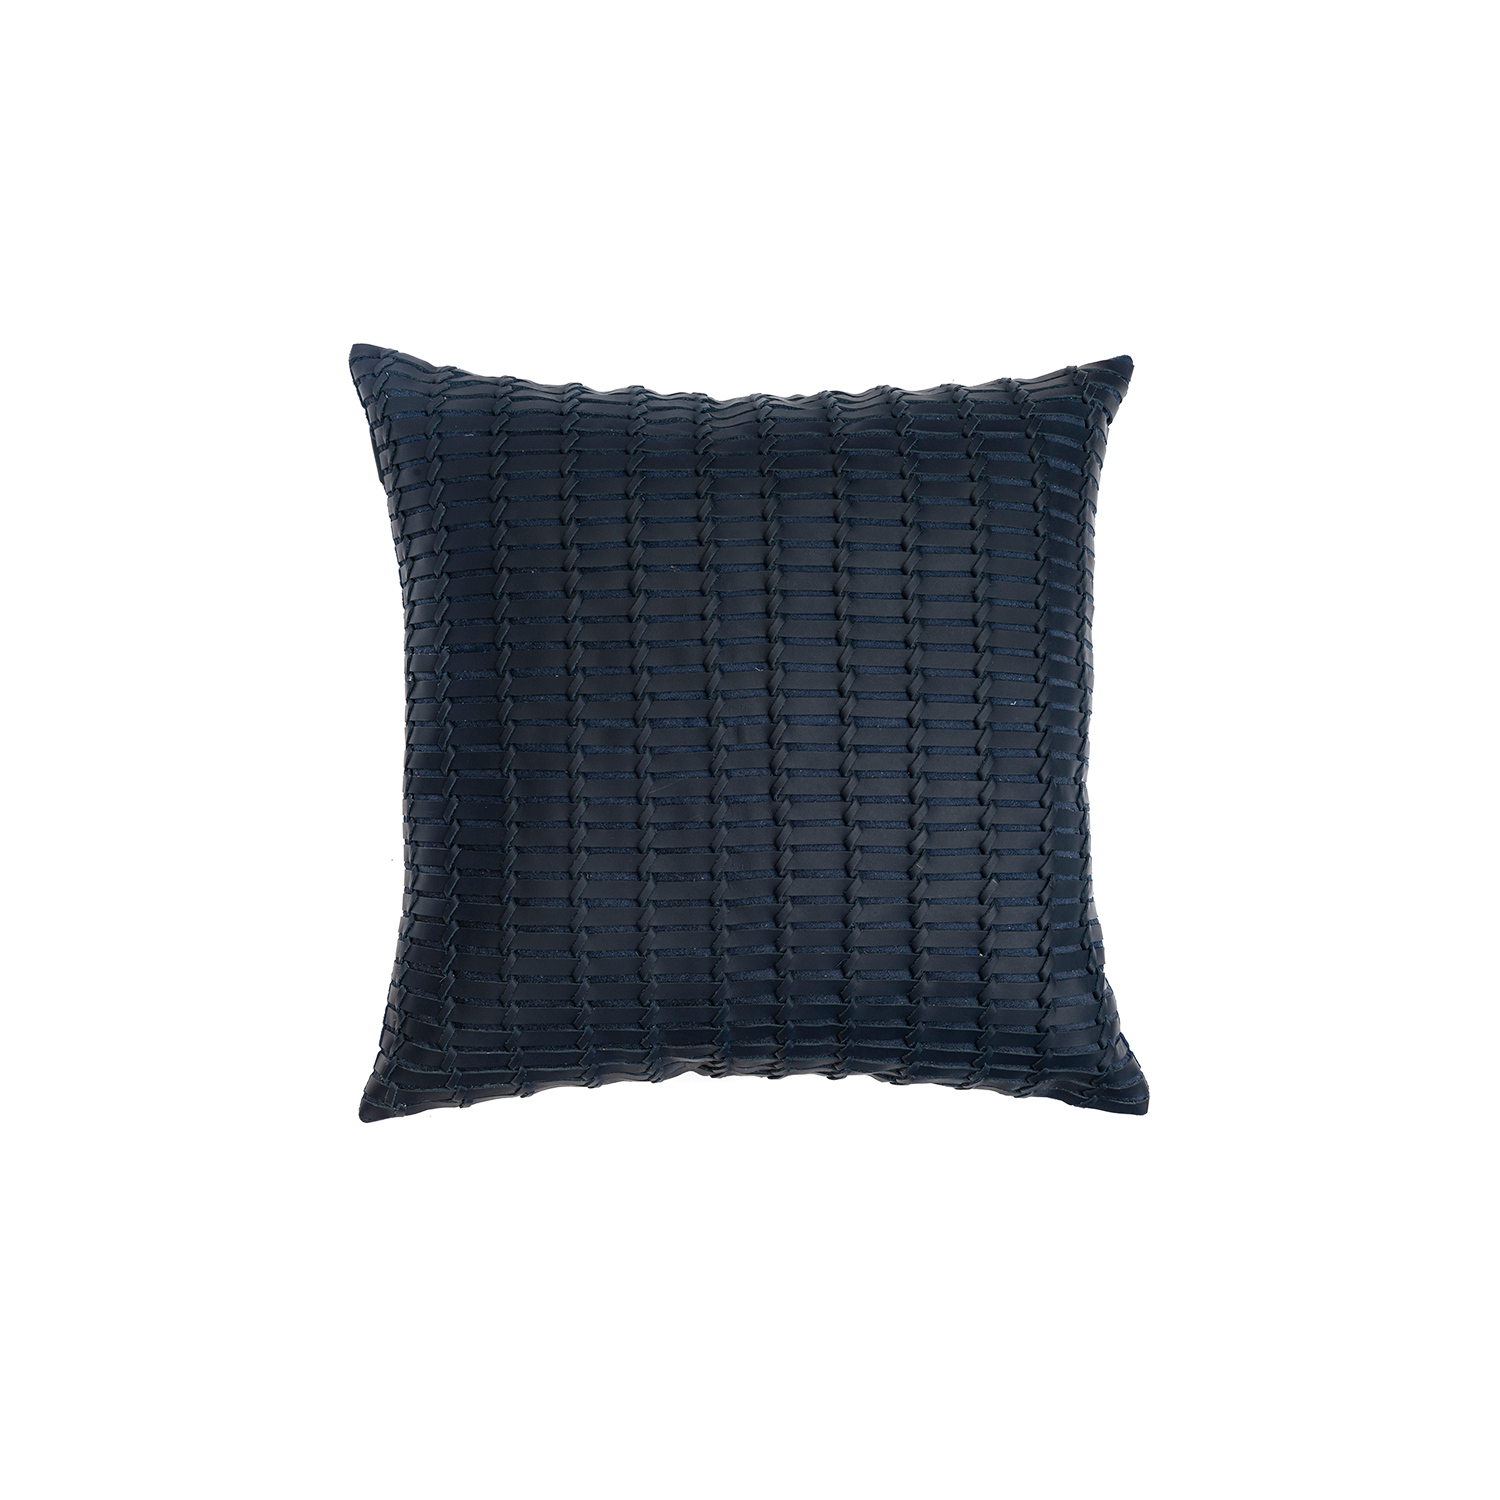 Maxi Indochina Woven Leather Cushion Square - The Maxi Indochina Woven Leather Cushionn is designed to complement an ambient with a natural and sophisticated feeling. This cushion style is available in pleated leather or pleated suede leather. Elisa Atheniense woven handmade leather cushions are specially manufactured in Brazil using an exclusive treated leather that brings the soft feel touch to every single piece.   The front panel is handwoven in leather and the back panel is 100% Pes, made in Brazil.  The inner cushion is available in Hollow Fibre and European Duck Feathers, made in the UK.  Please enquire for more information and see colour chart for reference.   | Matter of Stuff